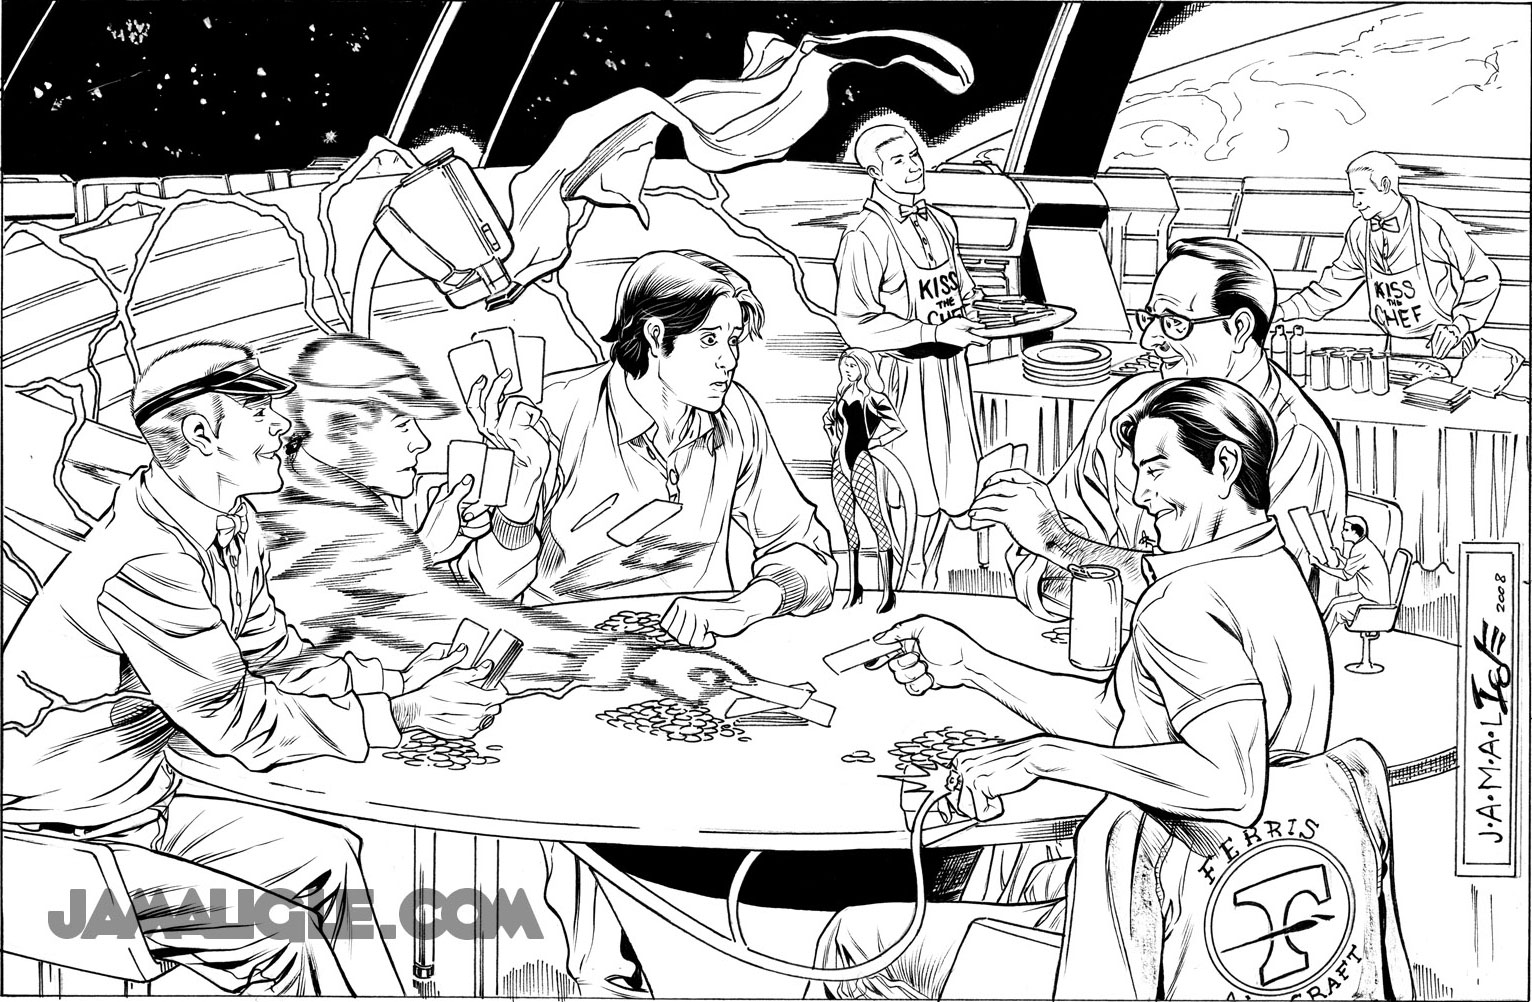 JLA Satellite Era Poker Game by Jamal Igle